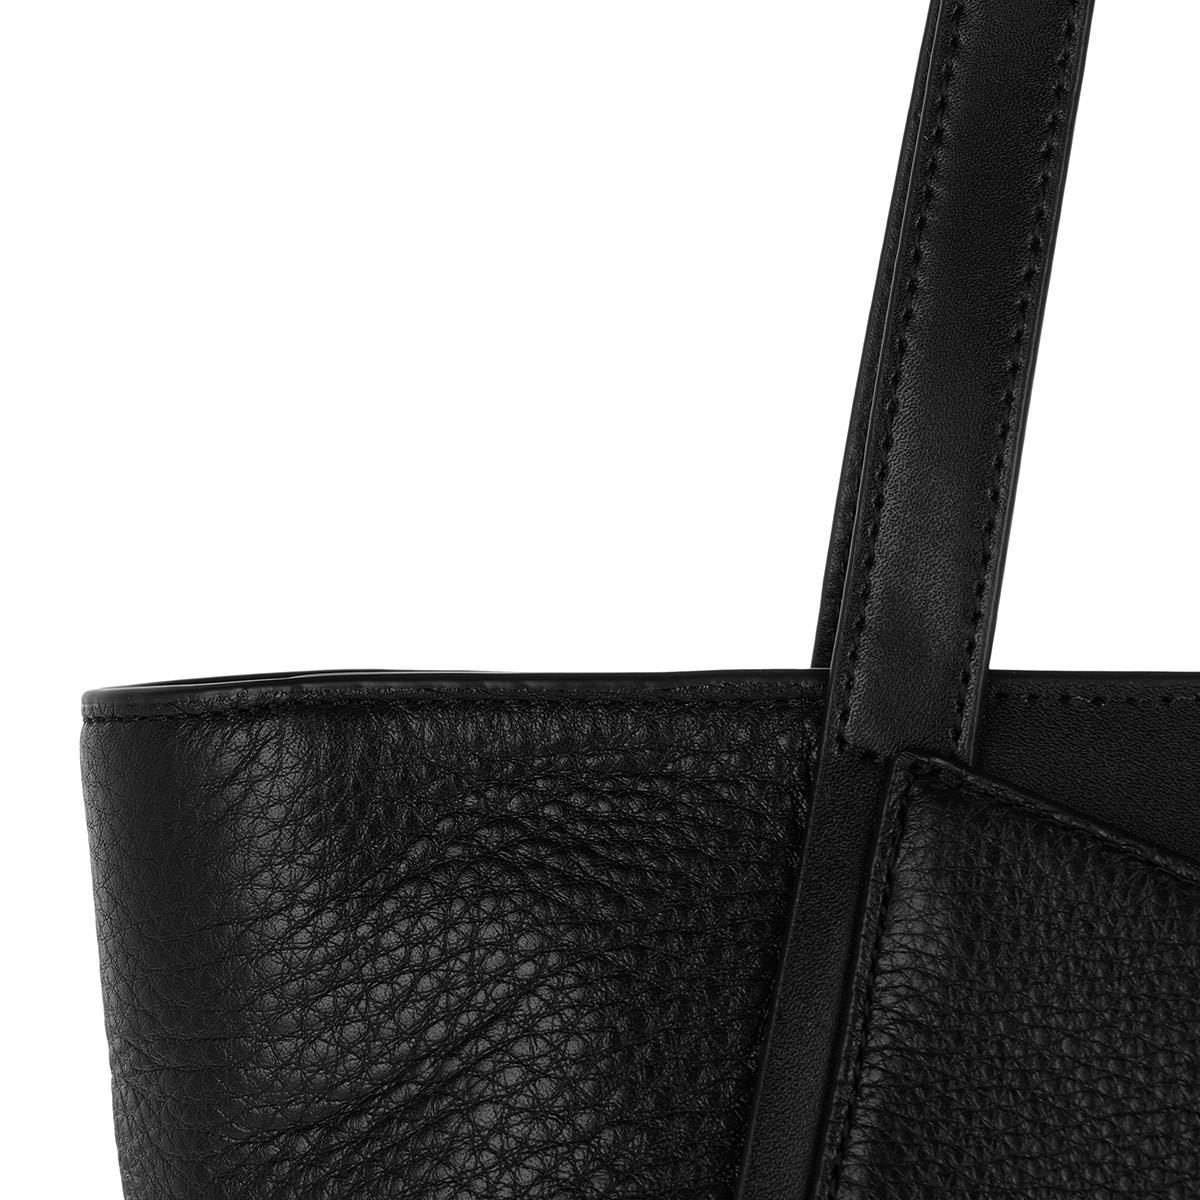 051cad5332d7f8 Michael Kors - Whitney Sm Tz Tote Black/silver - Lyst. View fullscreen